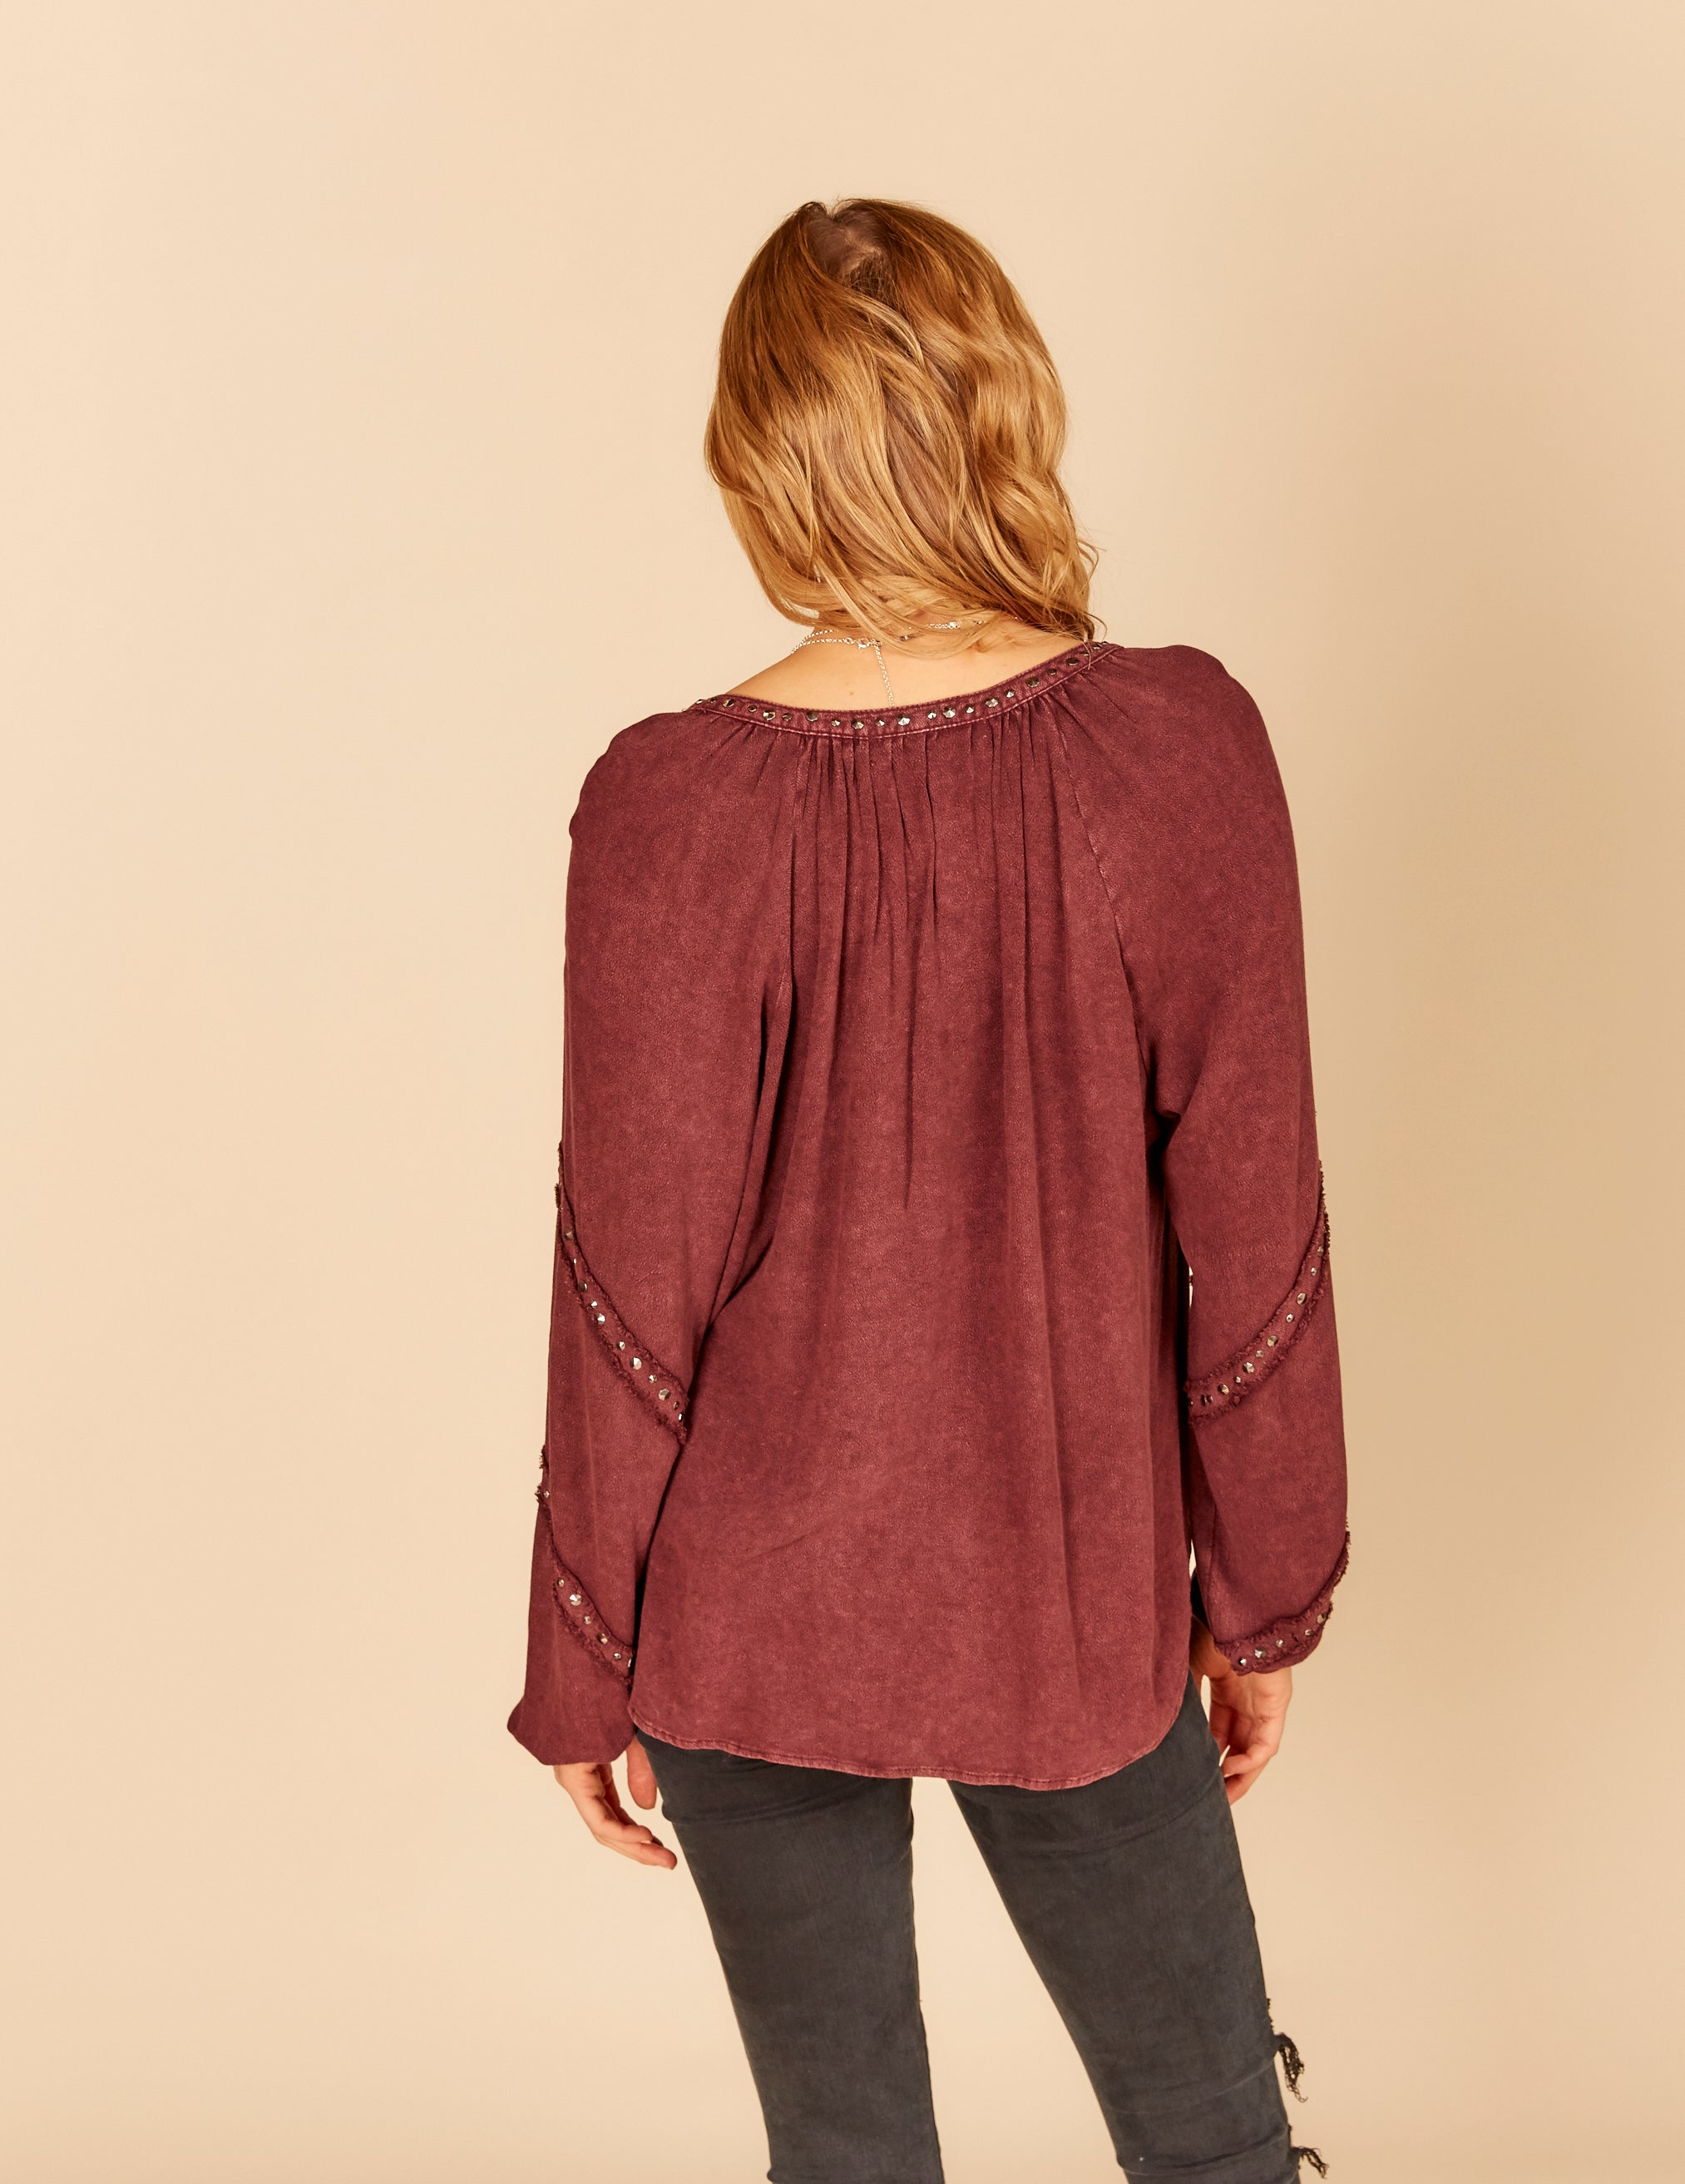 Studded Trim Detail Blouse